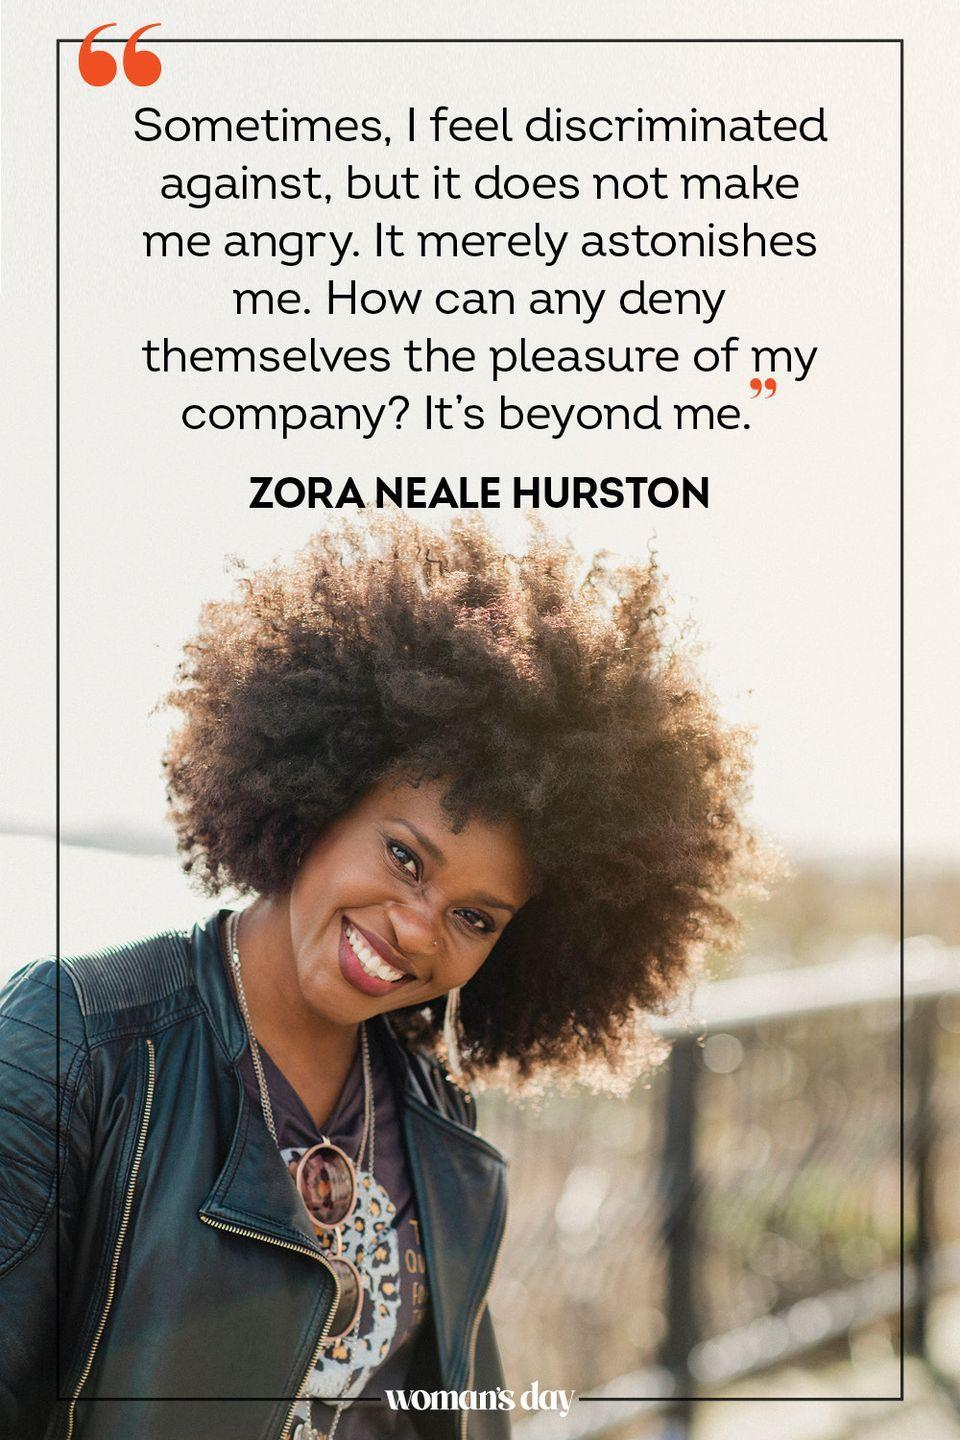 """<p>""""Sometimes, I feel discriminated against, but it does not make me angry. It merely astonishes me. How can any deny themselves the pleasure of my company? It's beyond me."""" — Zora Neale Hurston</p>"""